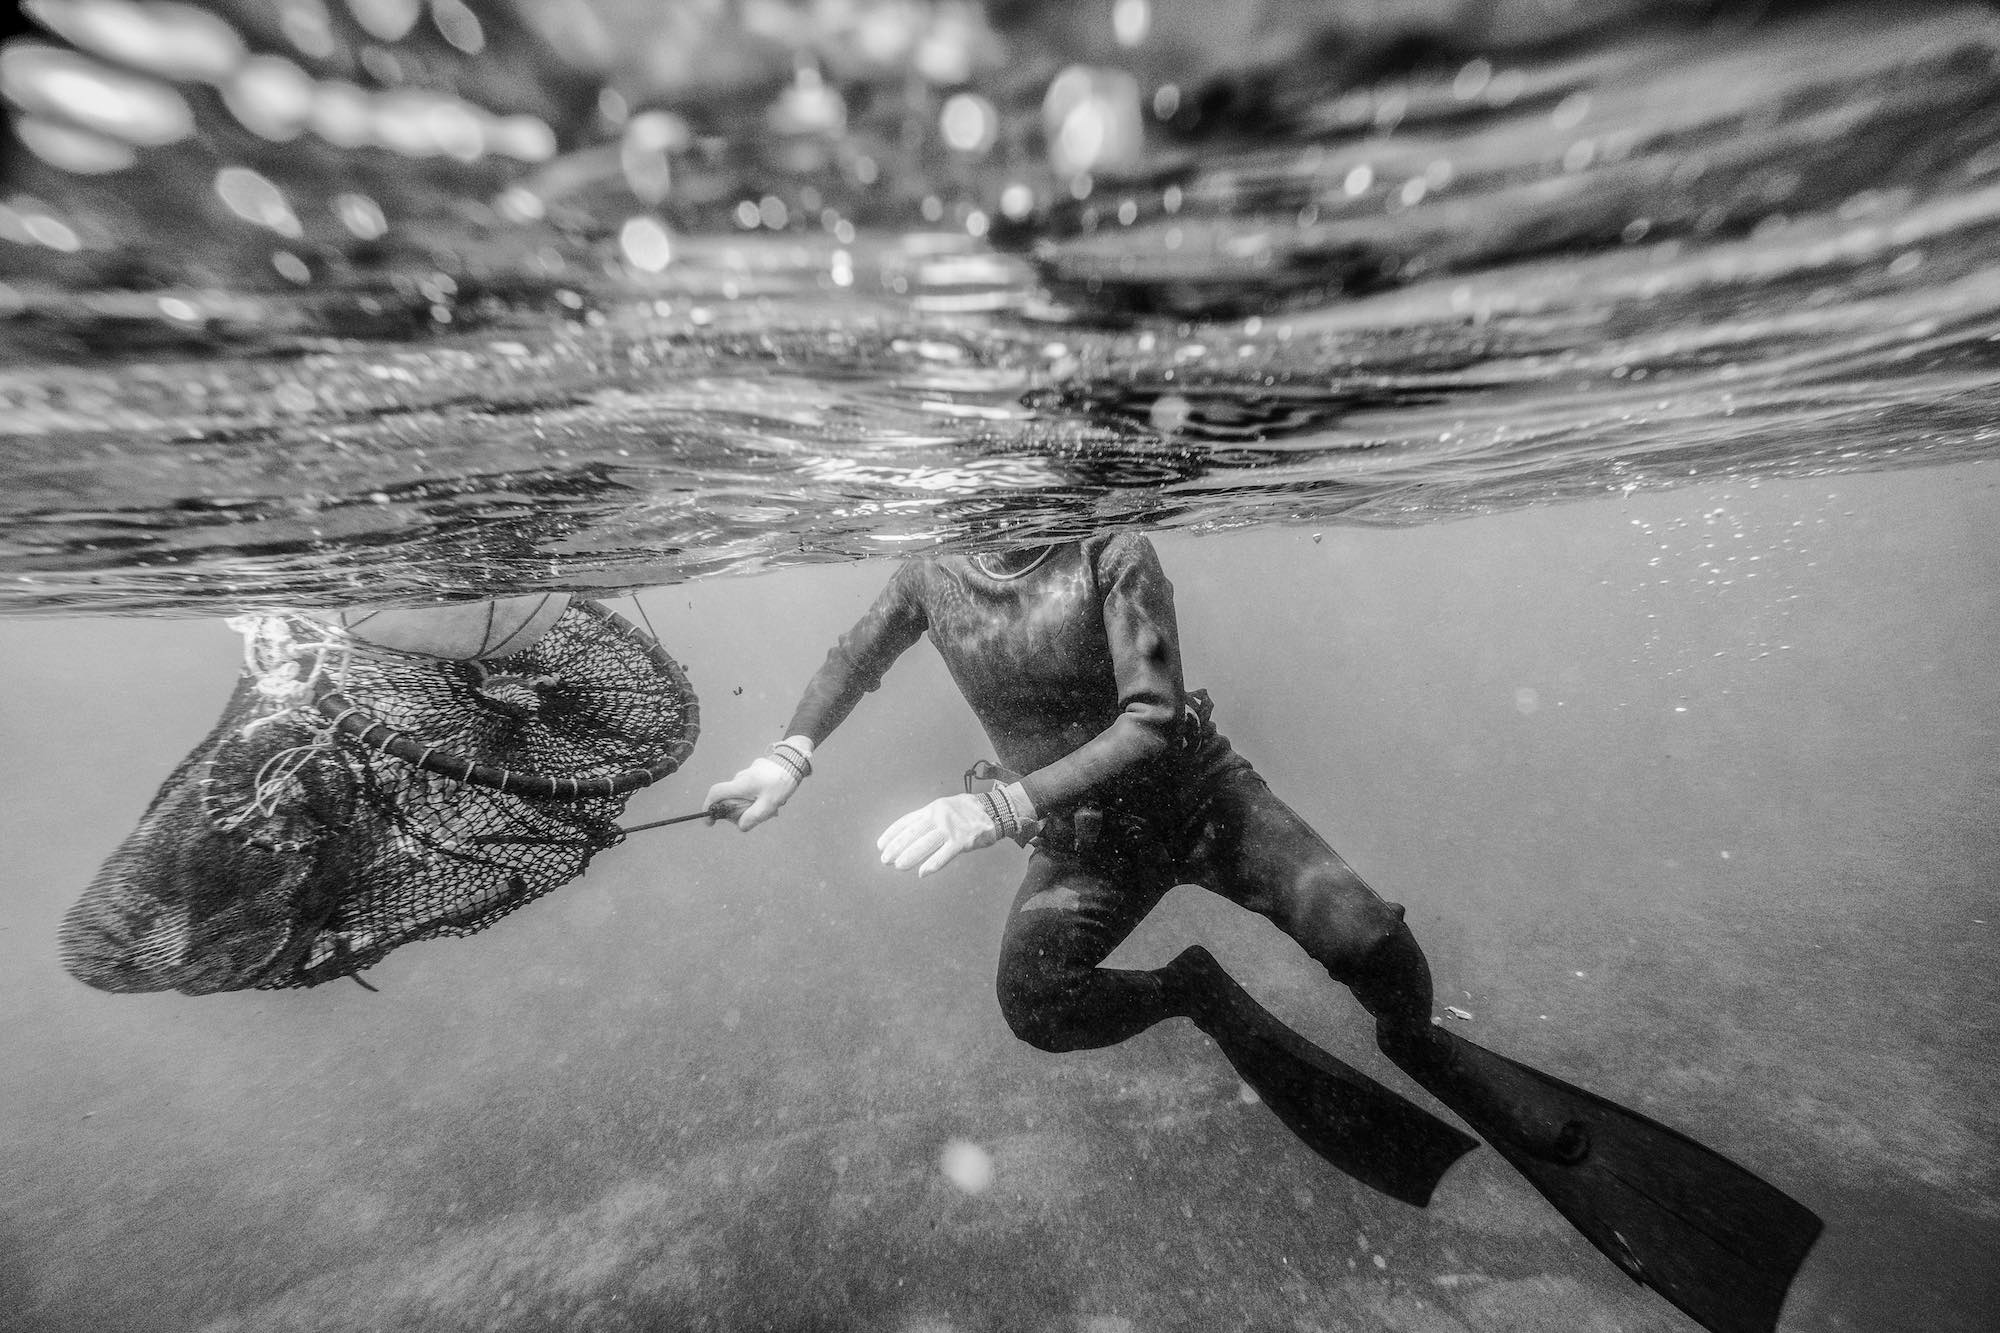 Haenyeo Women Divers Jeju Island Underwater Documentary Photography 4